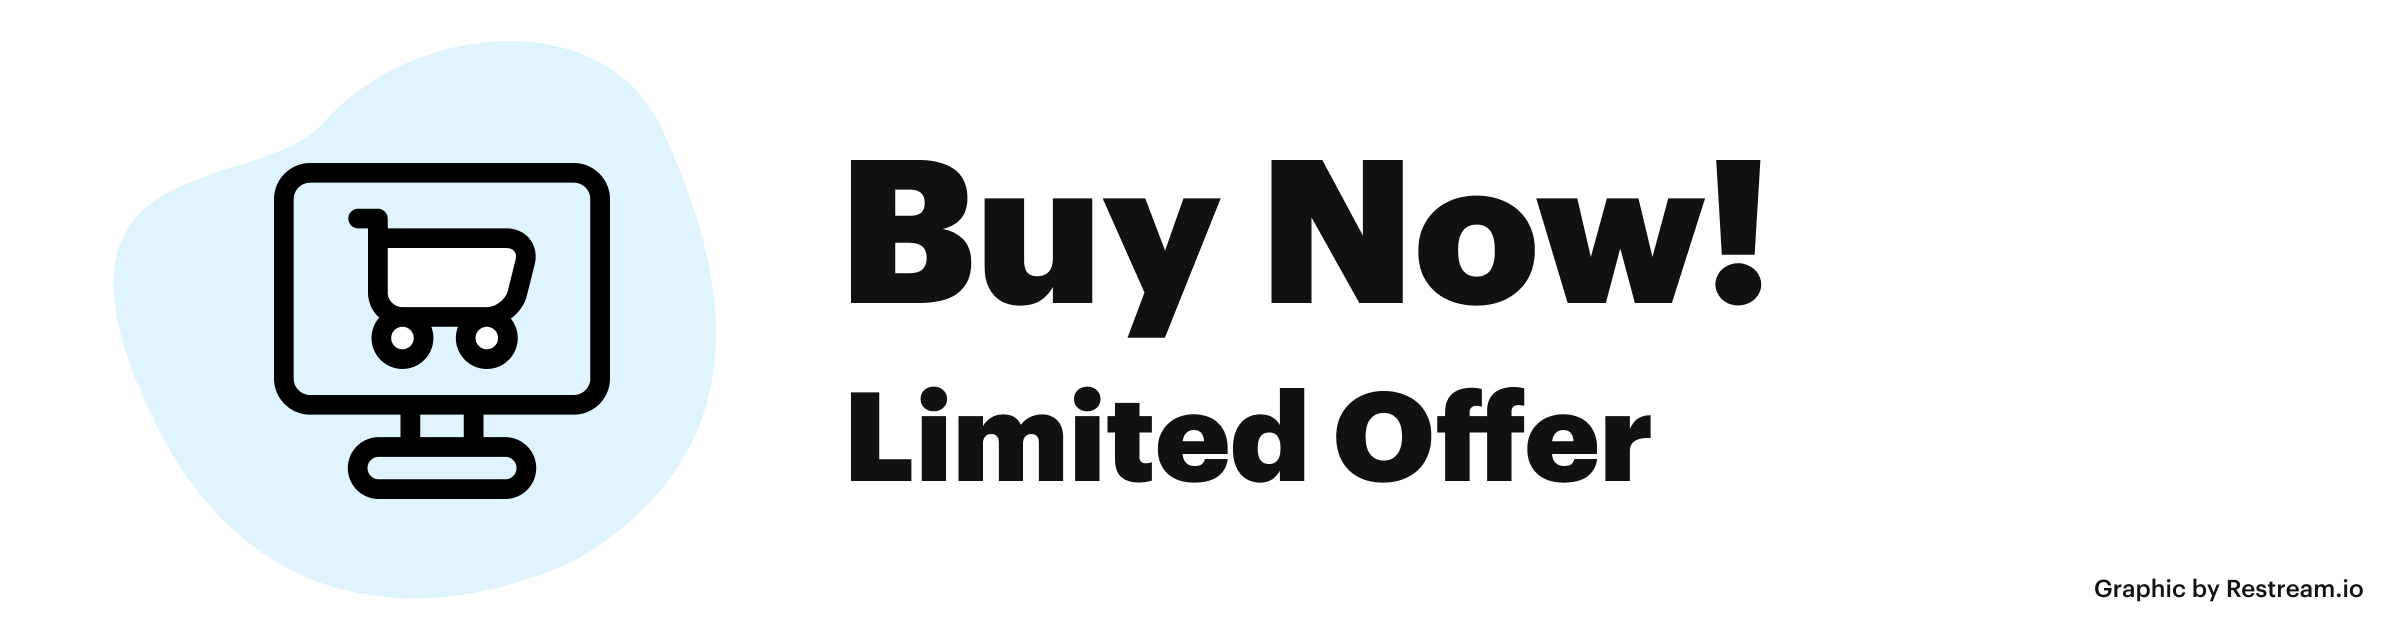 """Create an eye-catching offer - """"buy now! limited offer"""""""